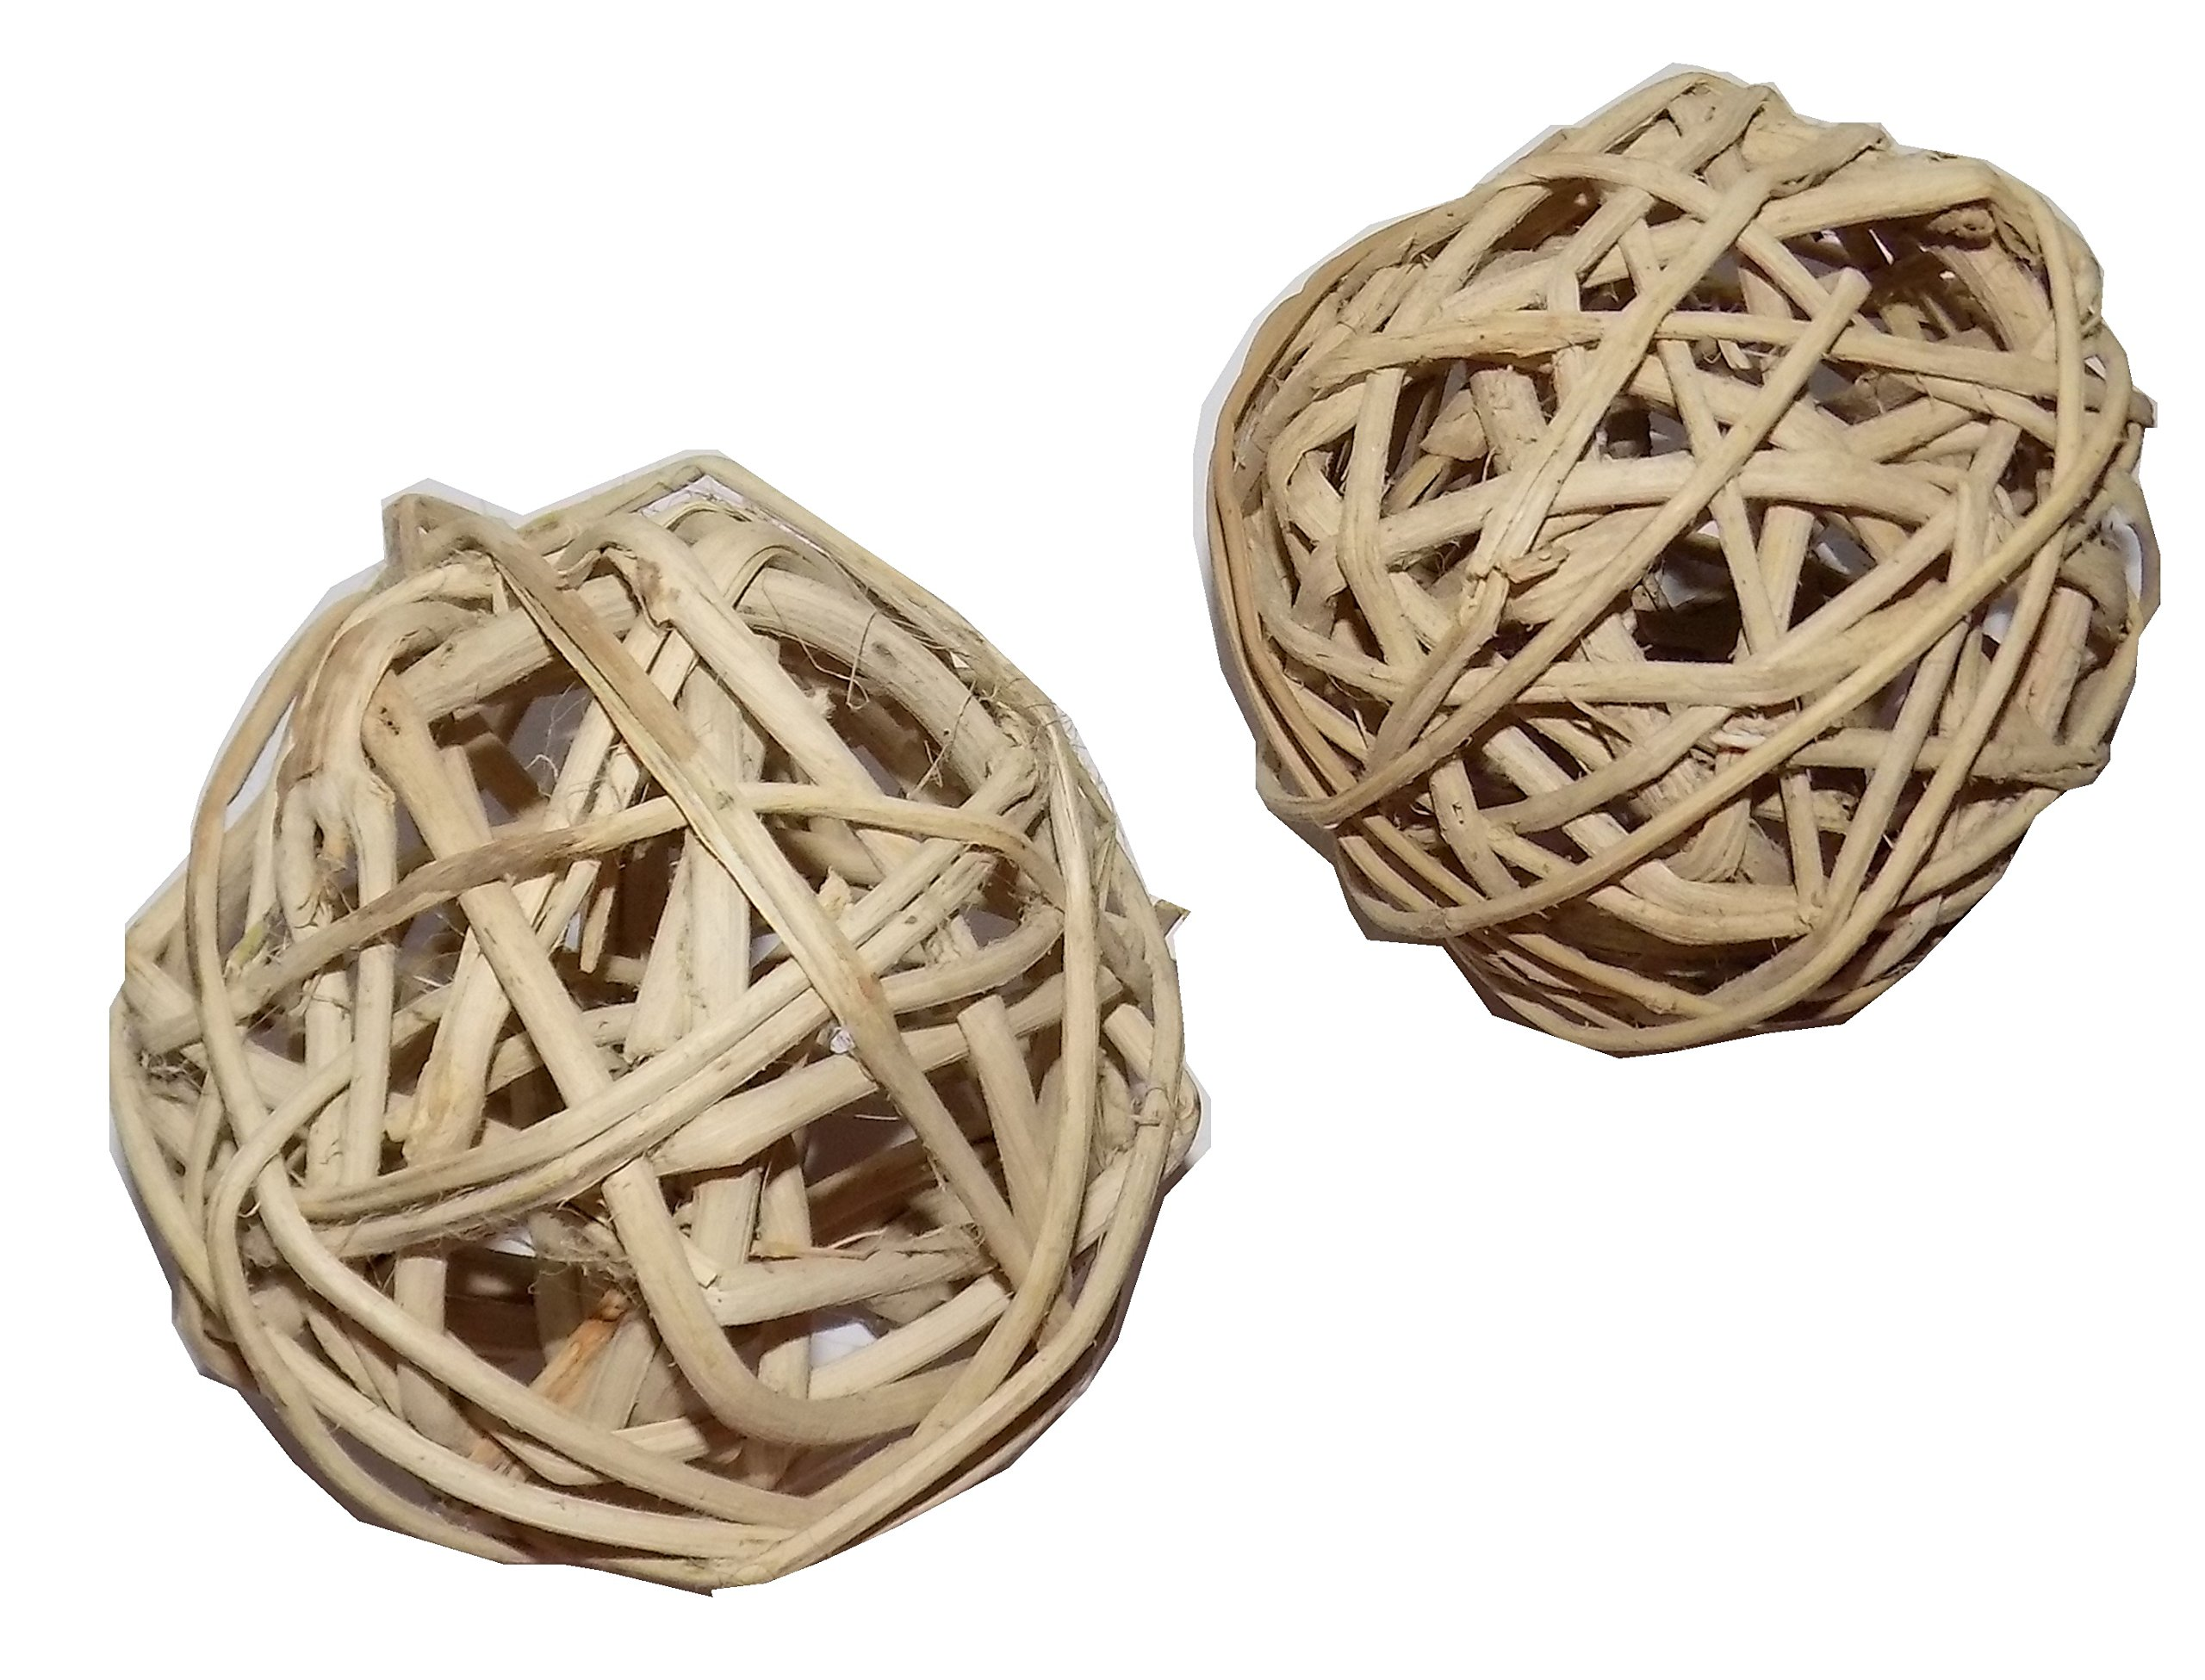 Hamsters Natural Vine Lanterns Guinea Pigs Healthy Toys for Rabbits Birds and Other Small Pets